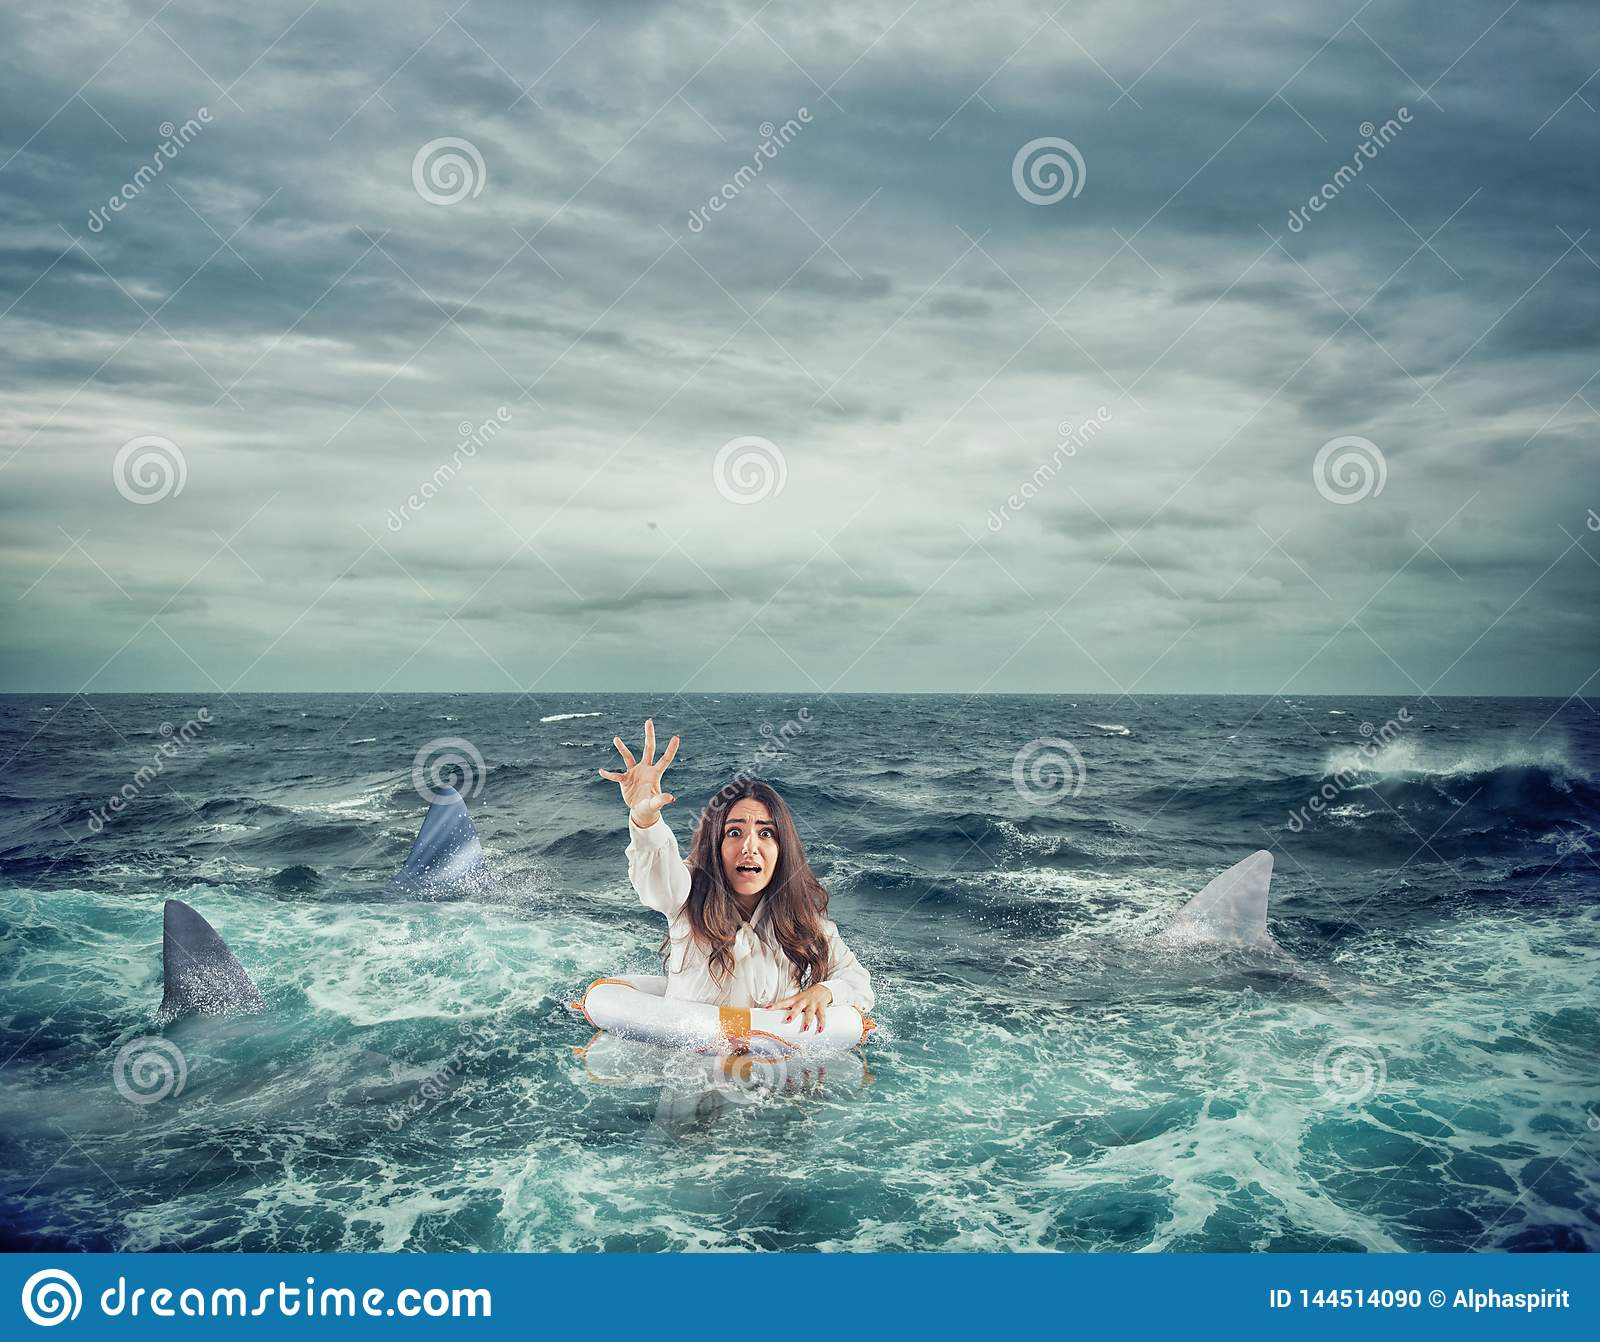 Businesswoman with lifebelt surrounded by sharks asks help